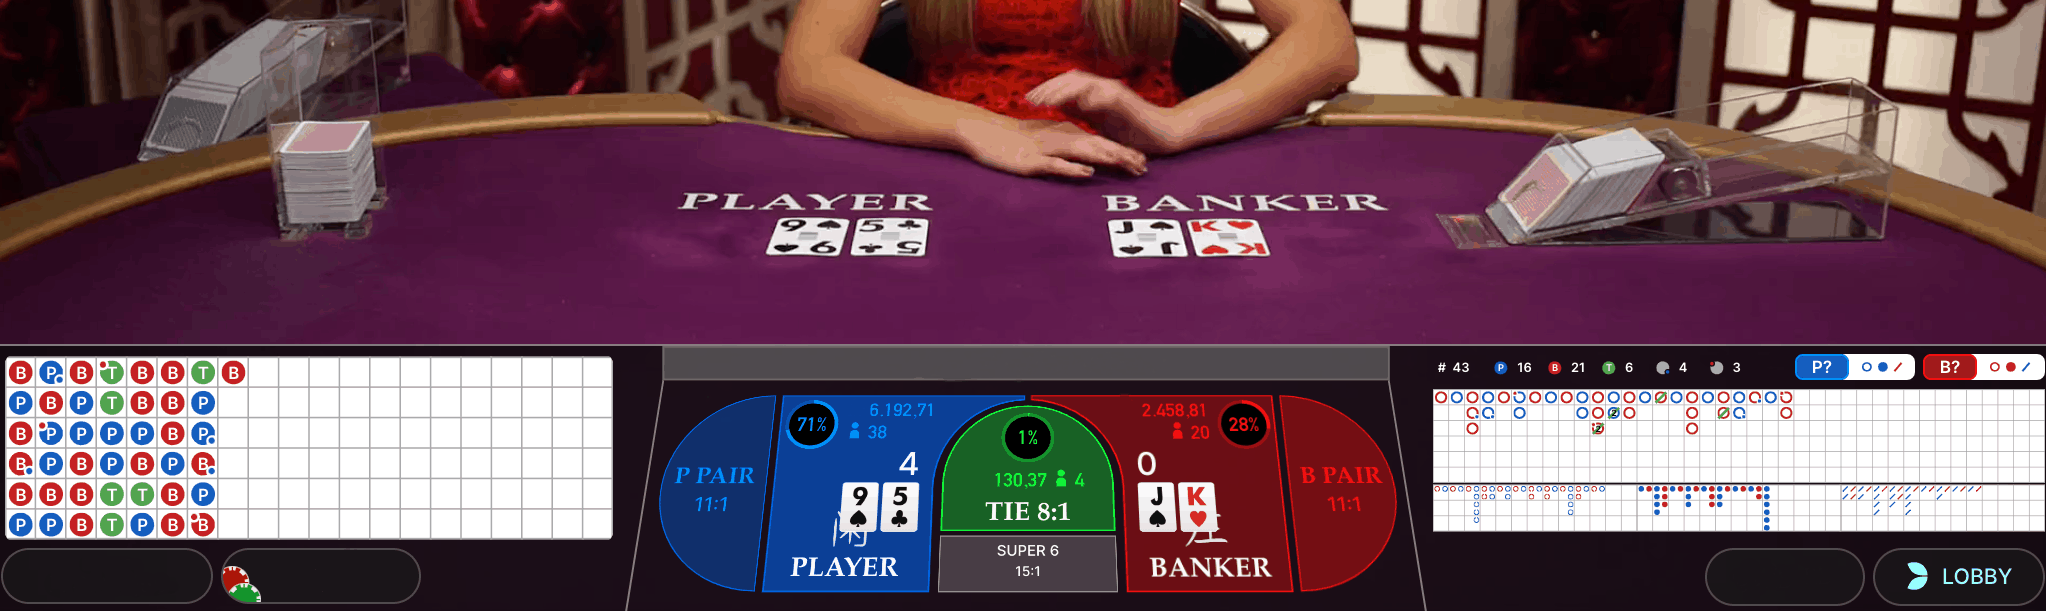 screenshot of the baccarat road interface at an online baccarat table